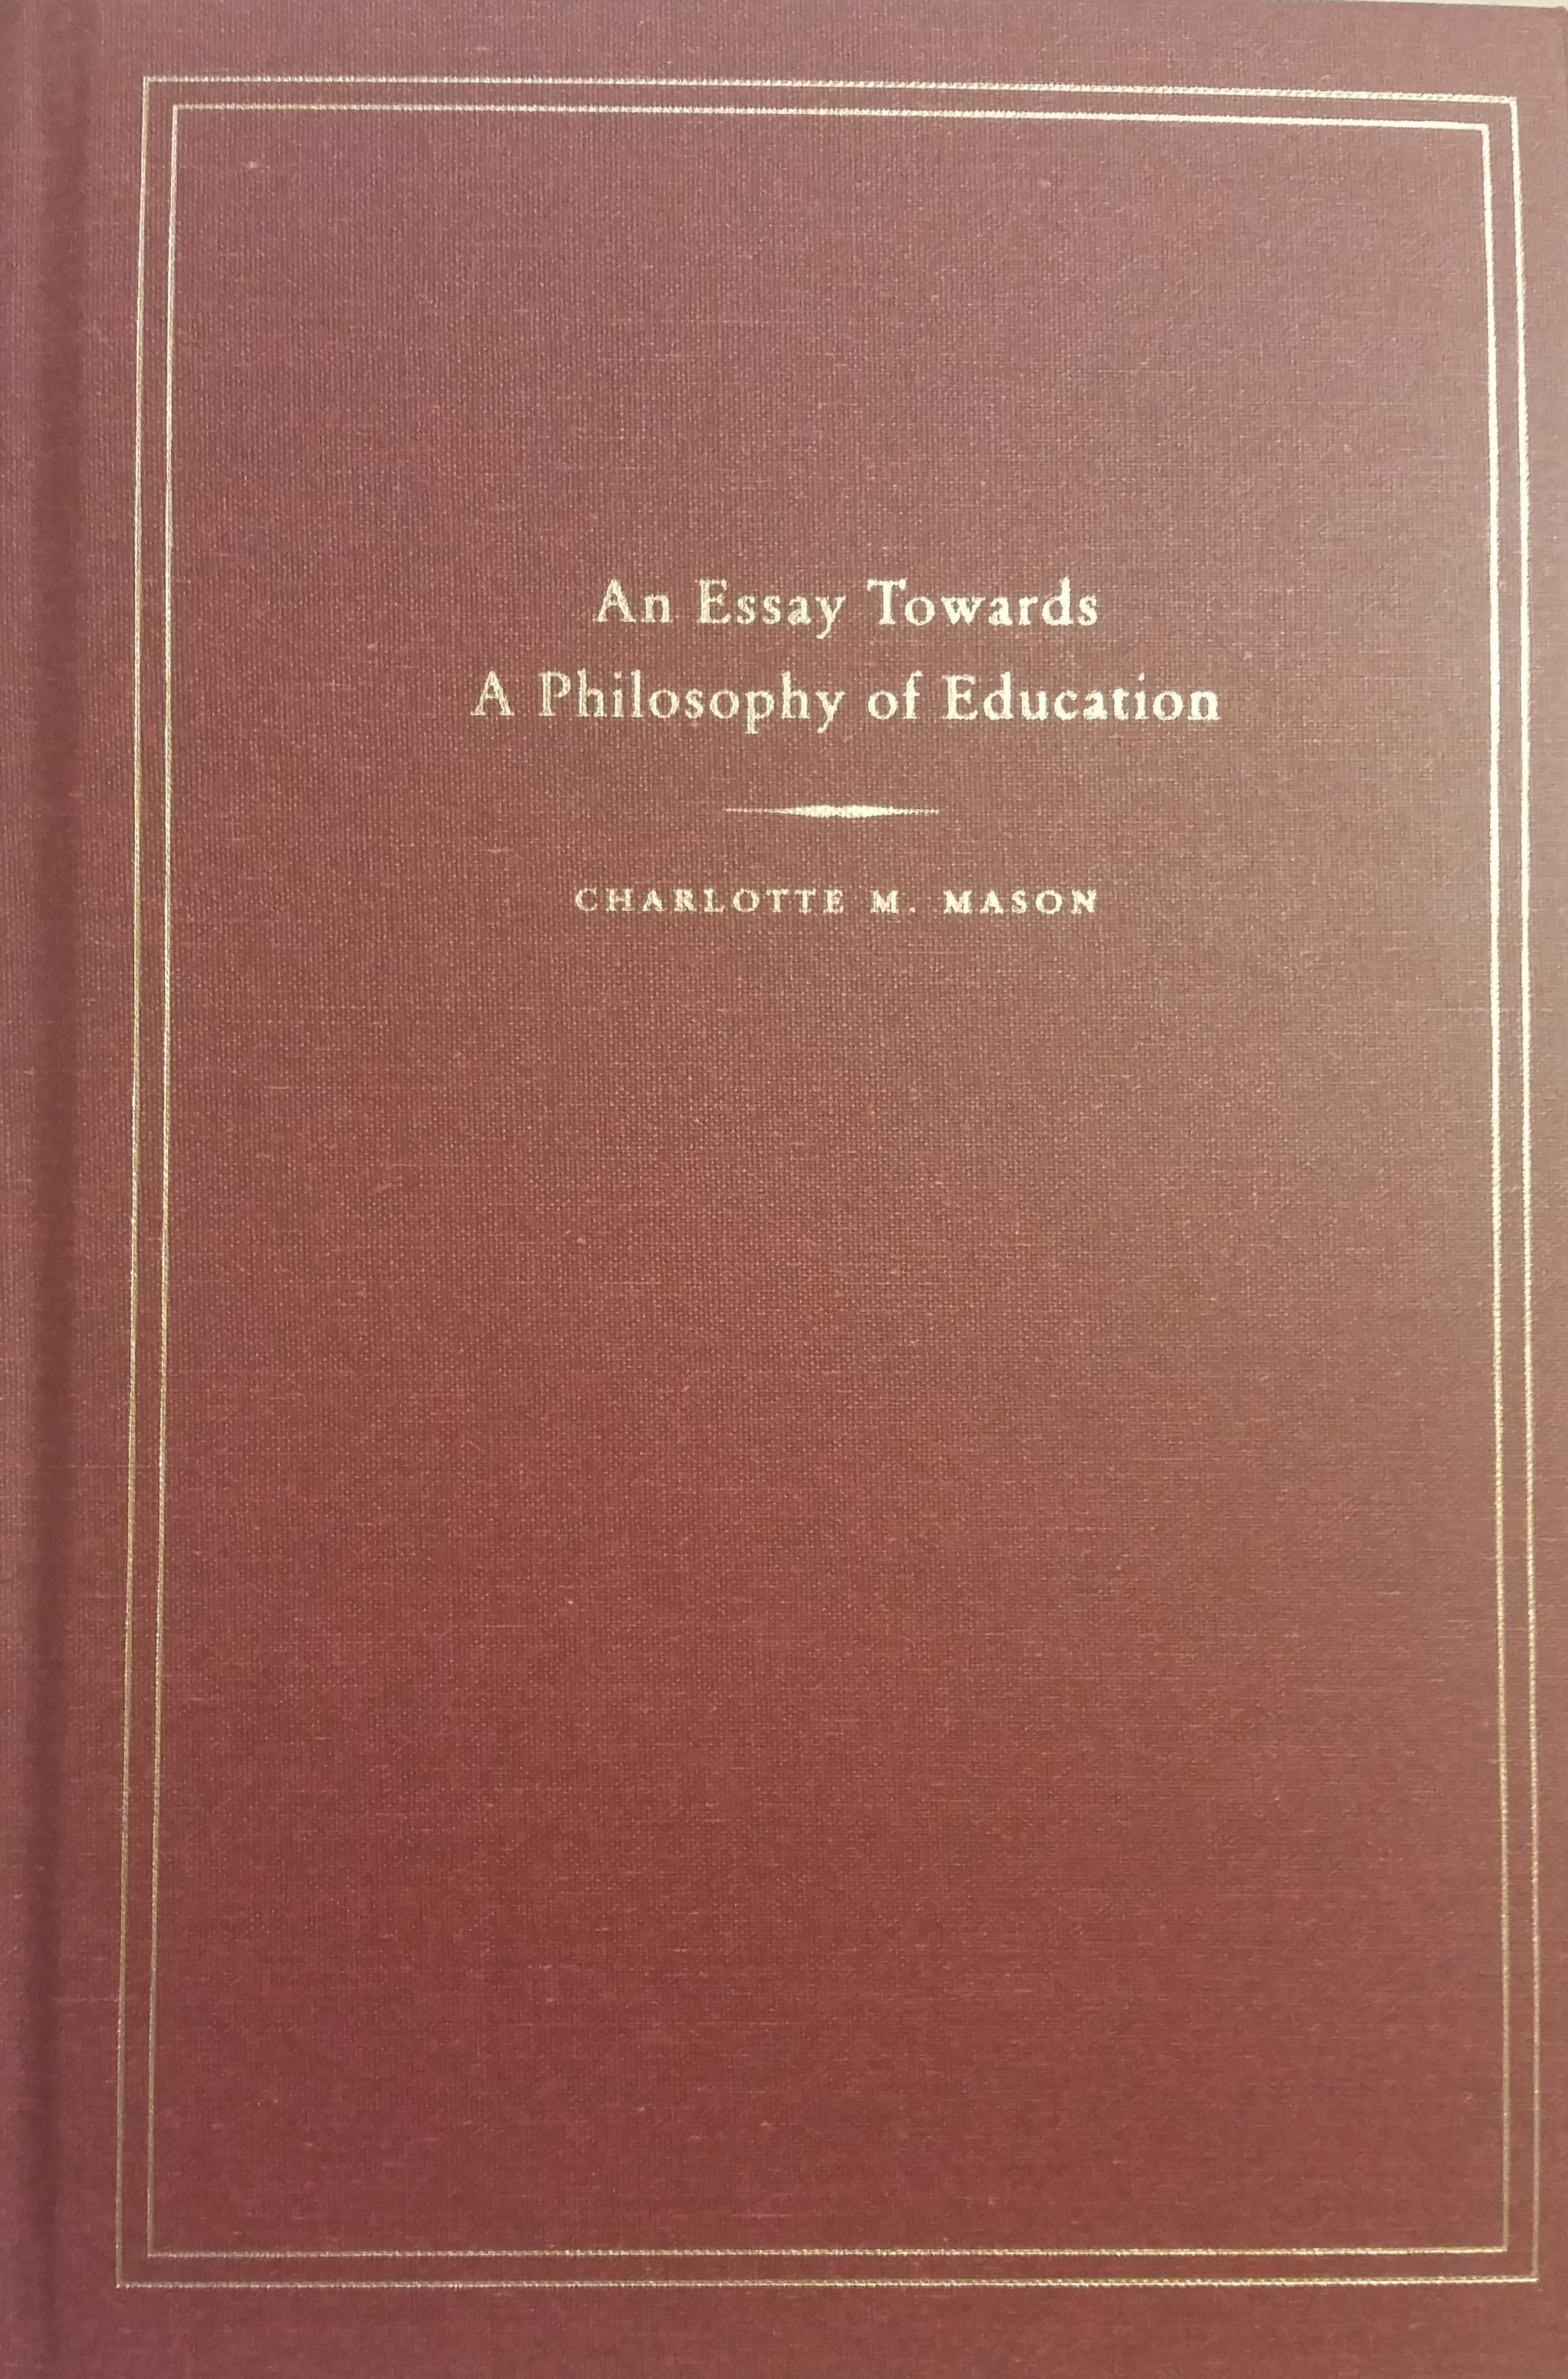 An Essay Towards a Philosophy of Education (Homeschooling Series, #6)